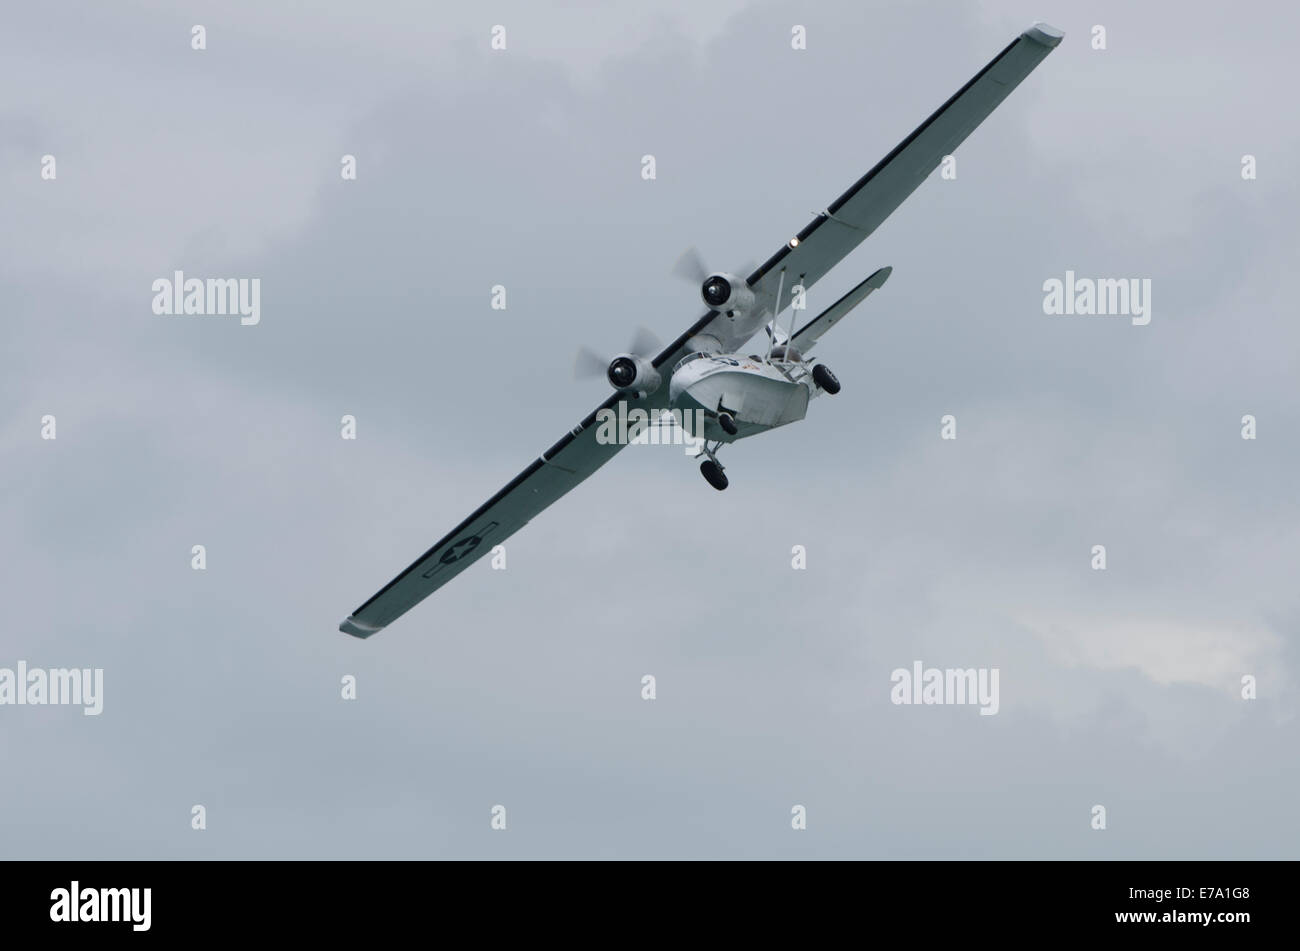 Consolidated Catalina Flying Boat displaying at Airwaves Air Show Portrush 2014 with normal landing gear down - Stock Image